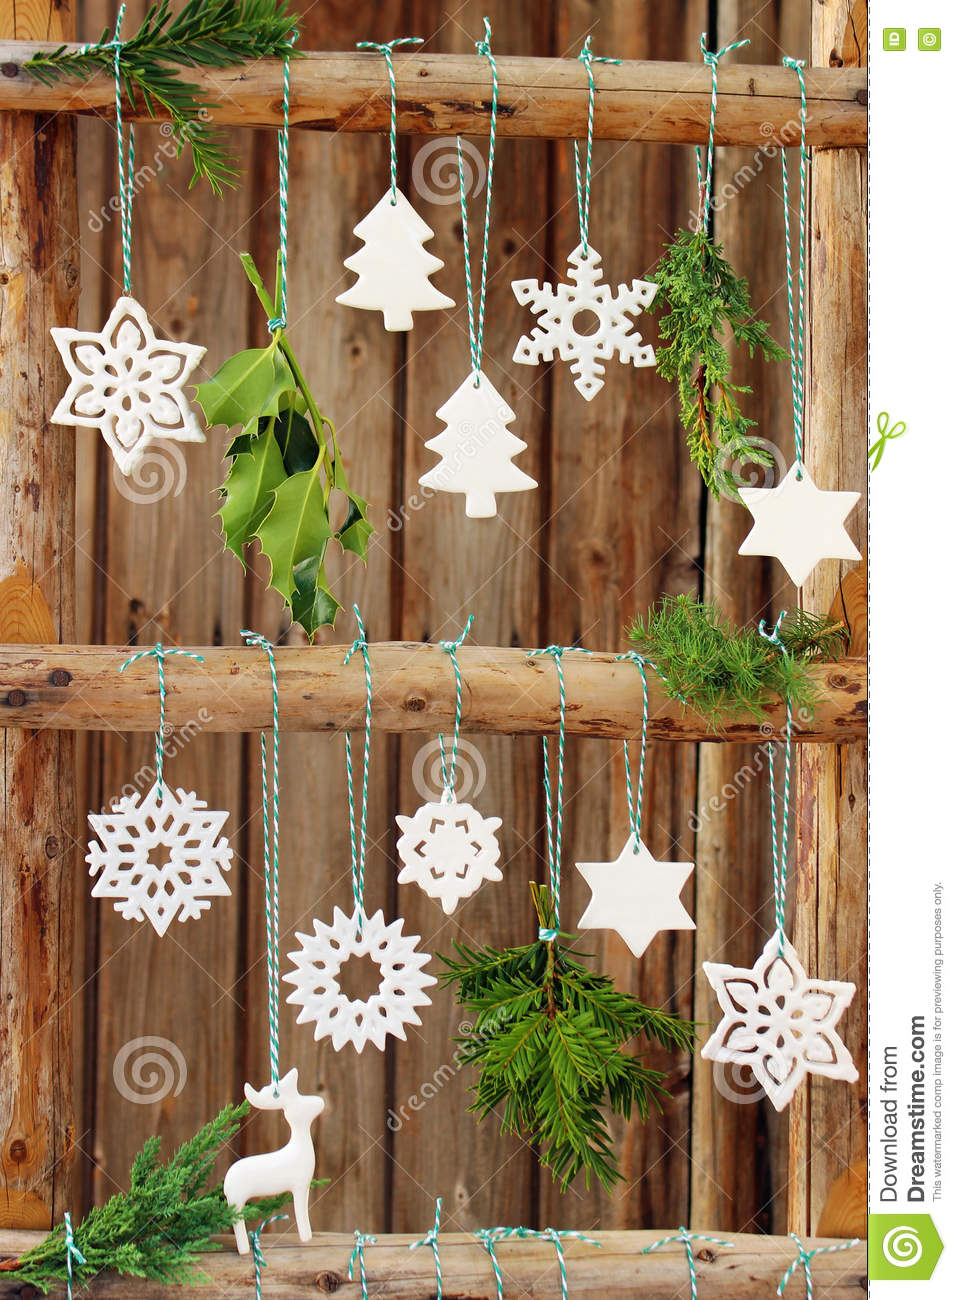 Christmas Decorations On A Wooden Fence Stock Image Image Of Rough